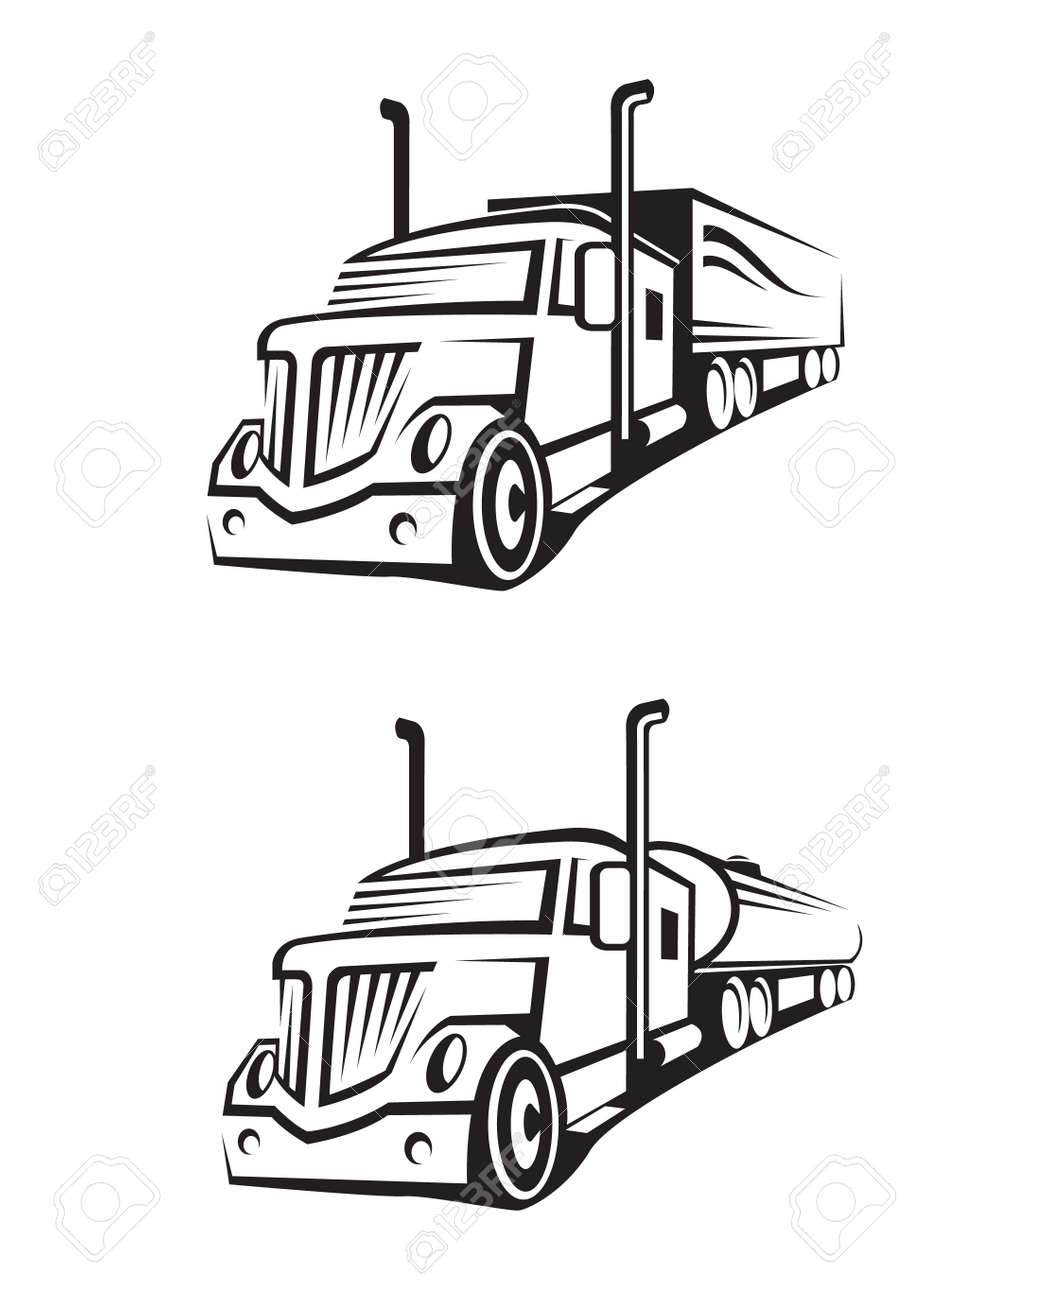 monochrome set of a truck with trailer and tank truck royalty free